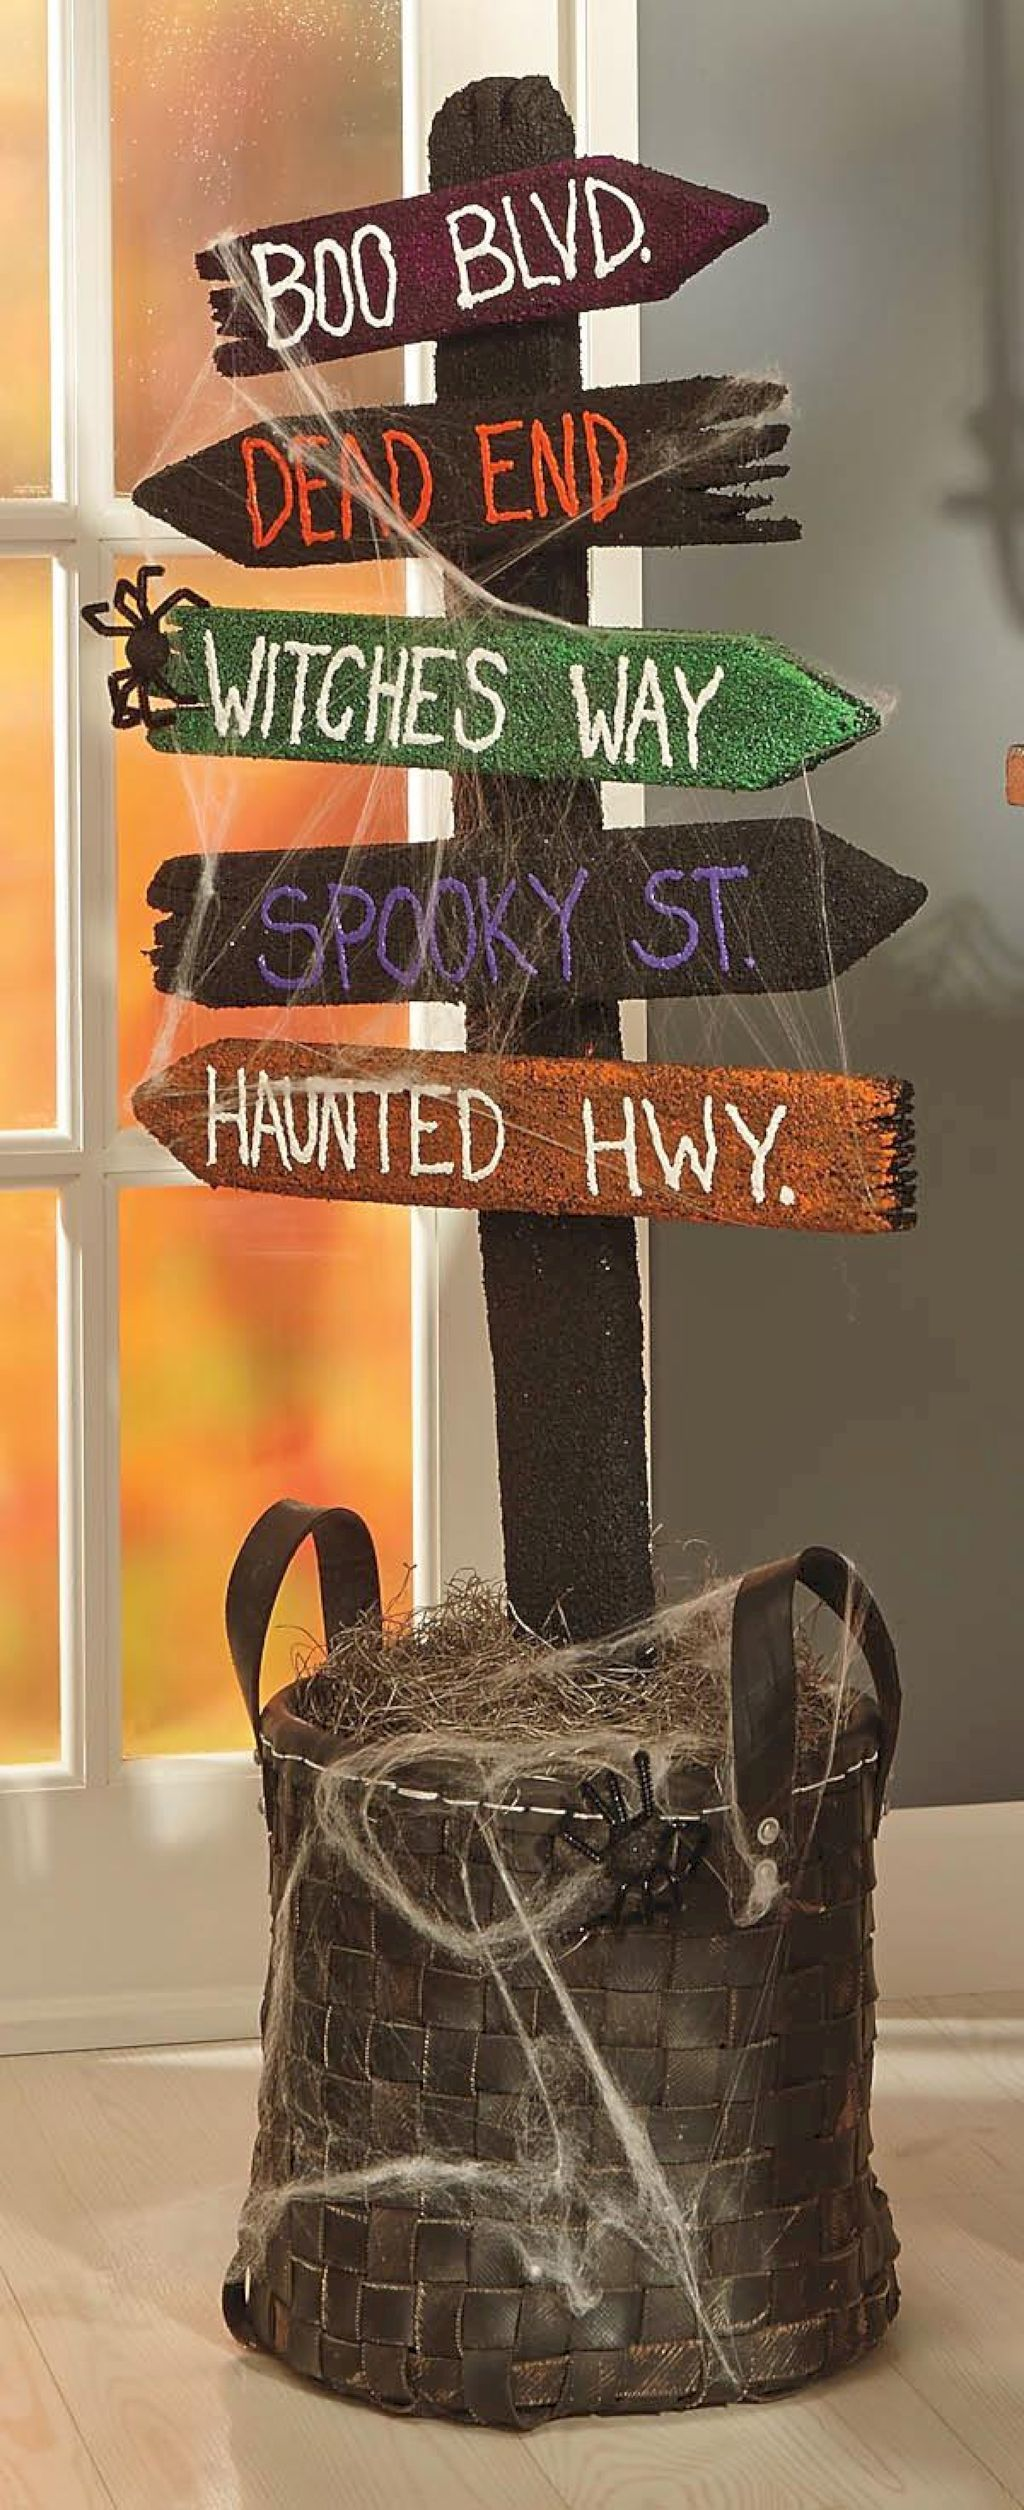 25 Wicked Halloween Home Decor Ideas Wicked, Halloween ideas and - Inexpensive Halloween Decorations